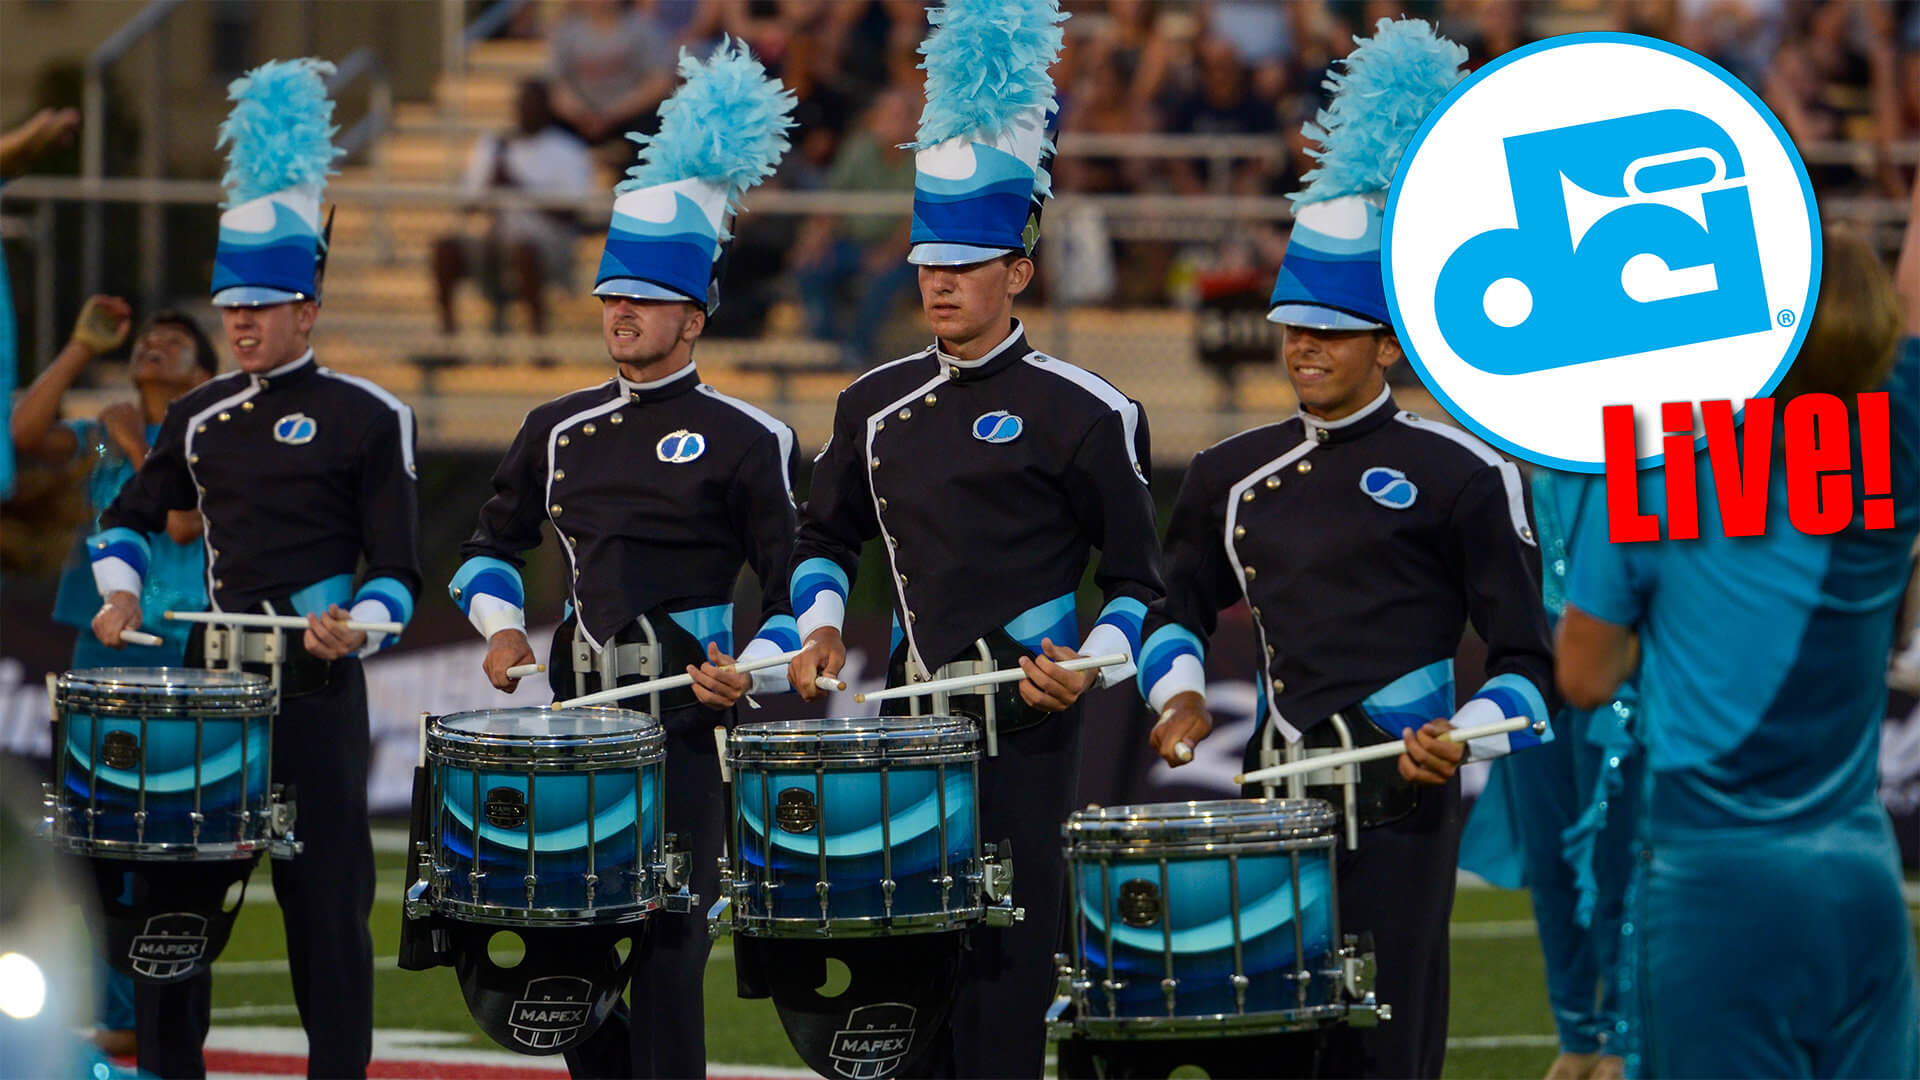 What to Watch Tonight: DCI Live! from Daytona Beach